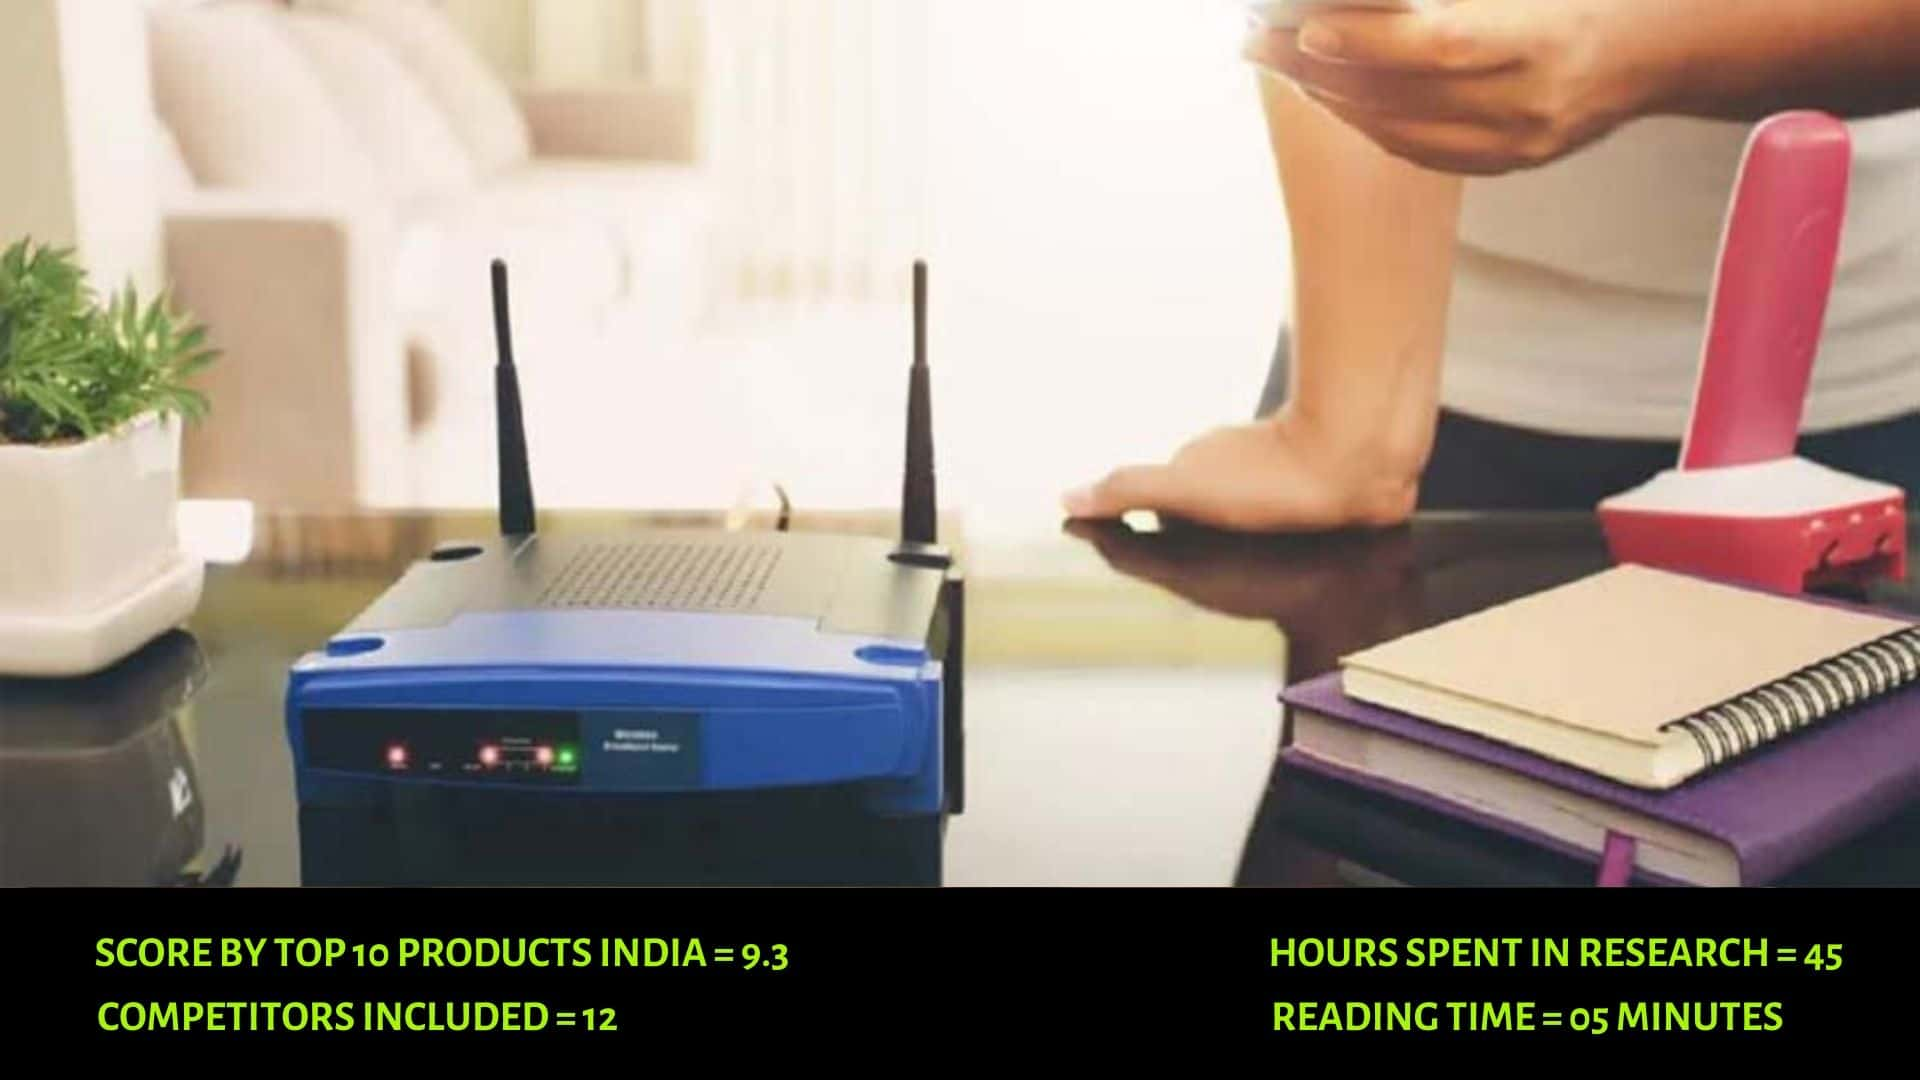 Is iBall Router Really Worth Purchase?